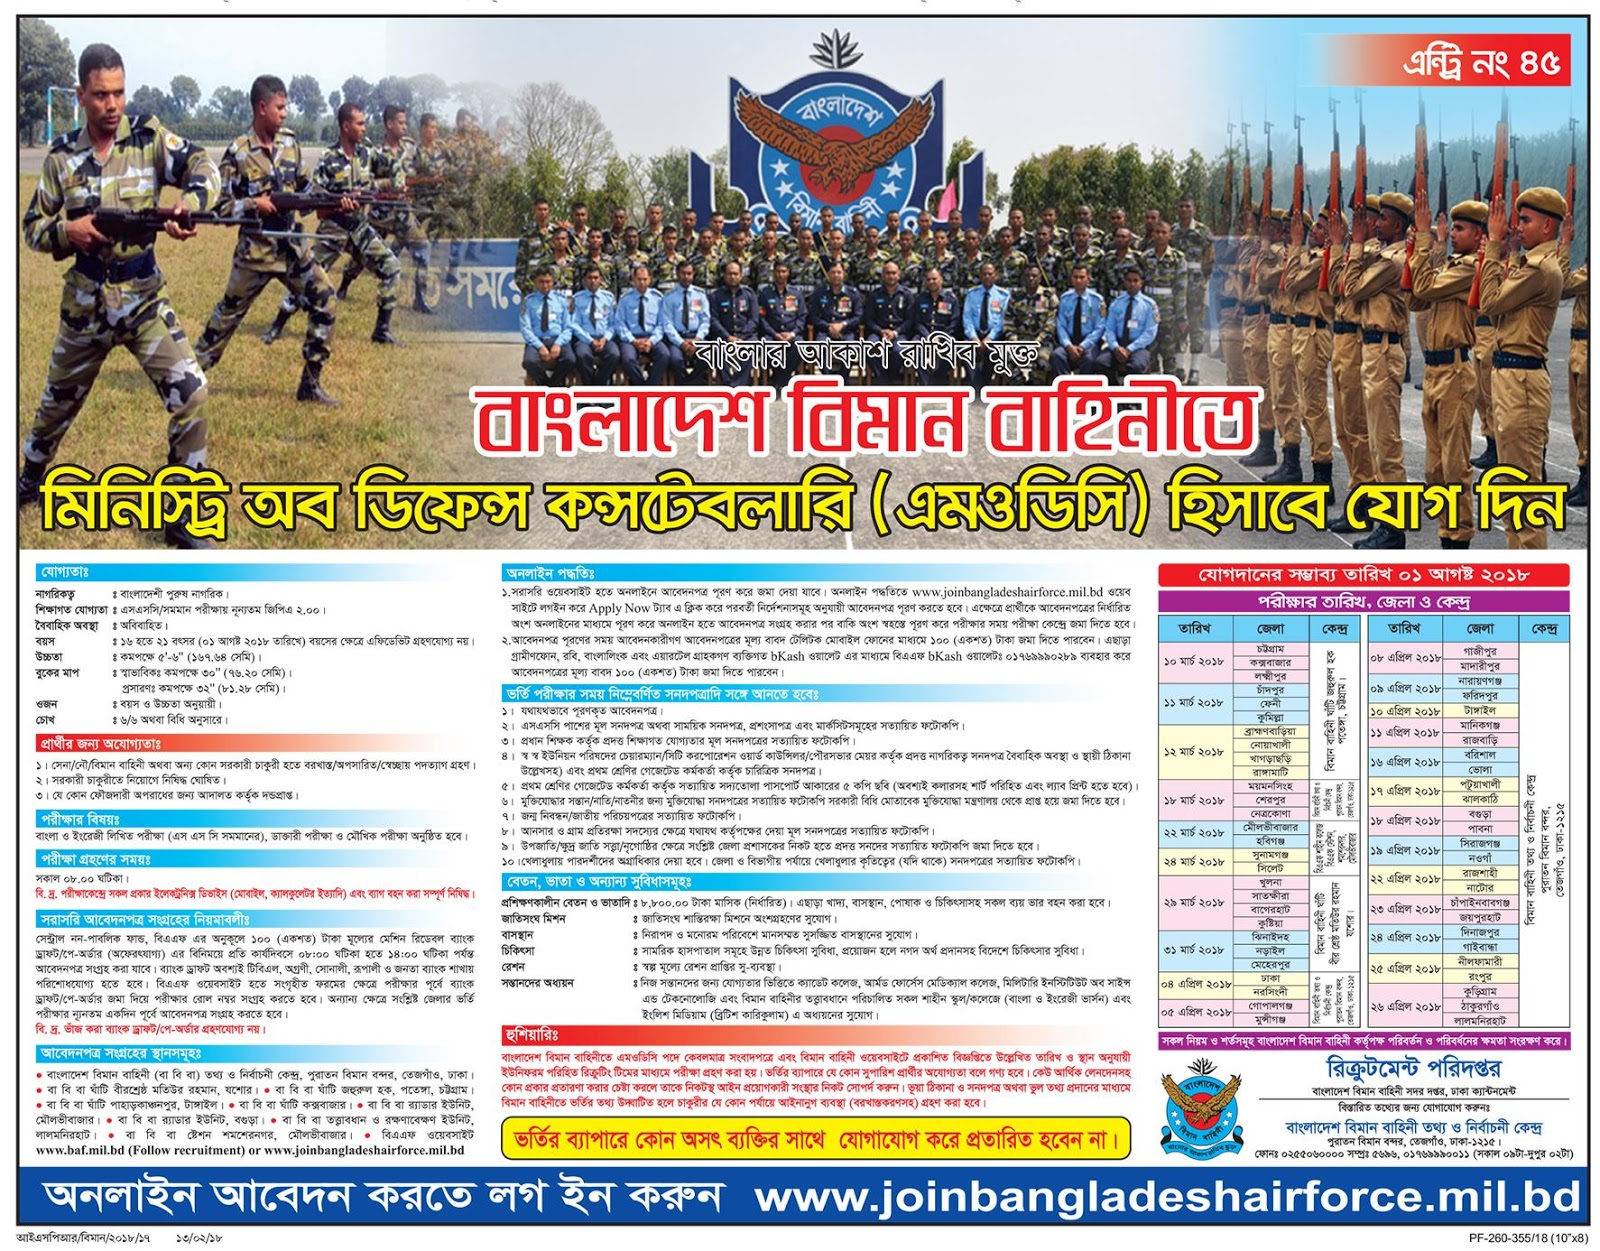 Bangladesh Air Force Ministry of Defense Constabulary (MODC) Recruitment Apply Instruction, Educational Qualification, Salary, Application Fee, Age and Other Information